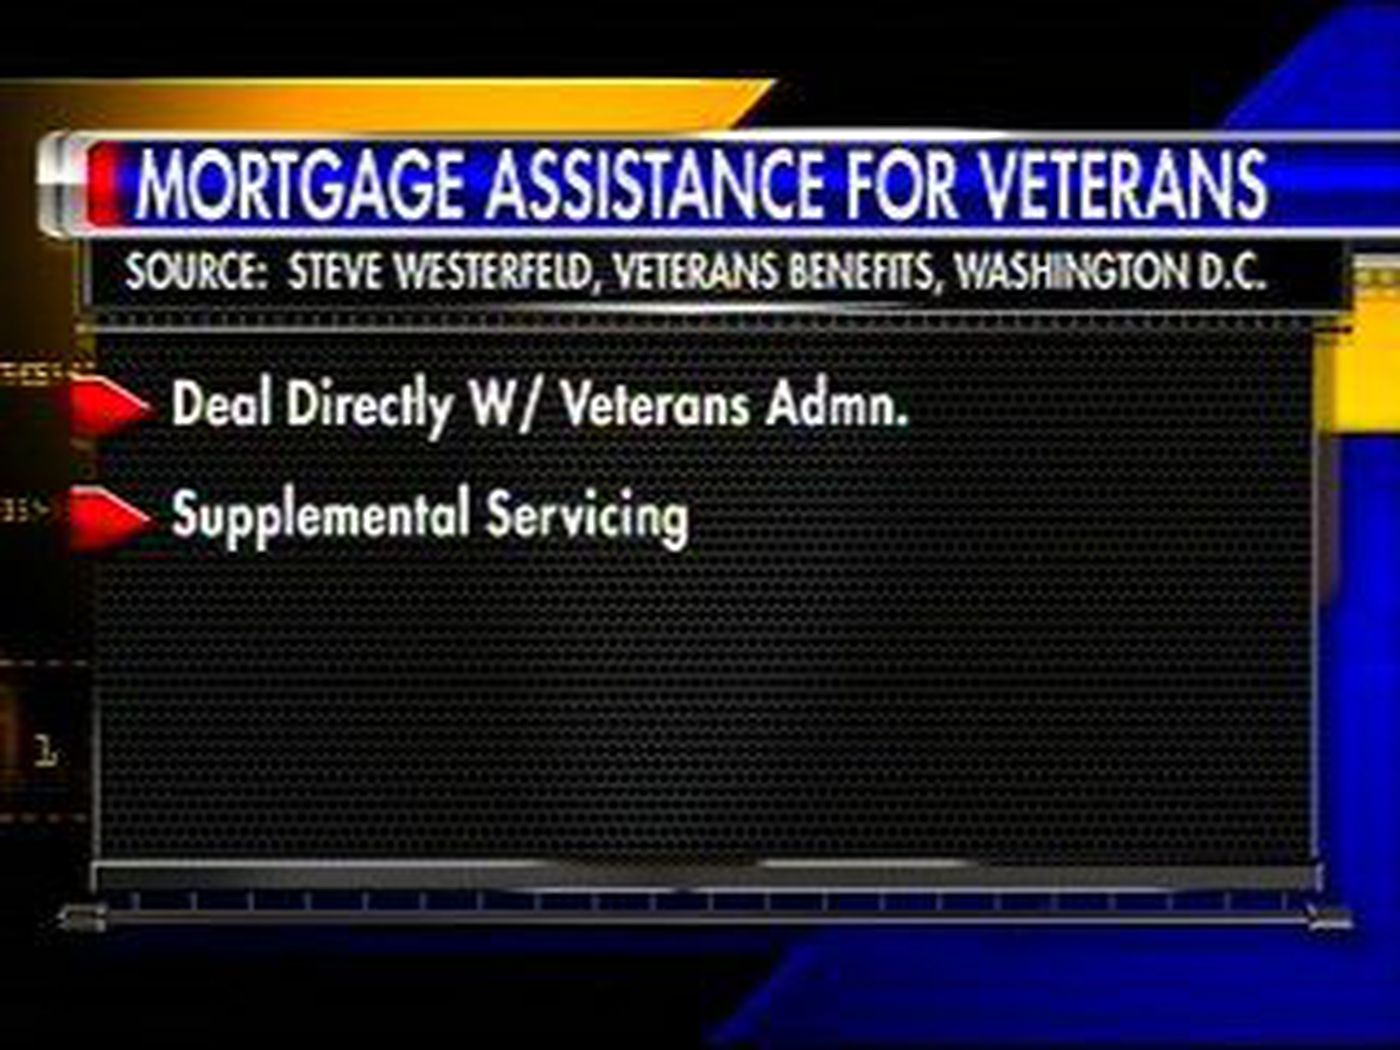 Mortgage assistance for veterans